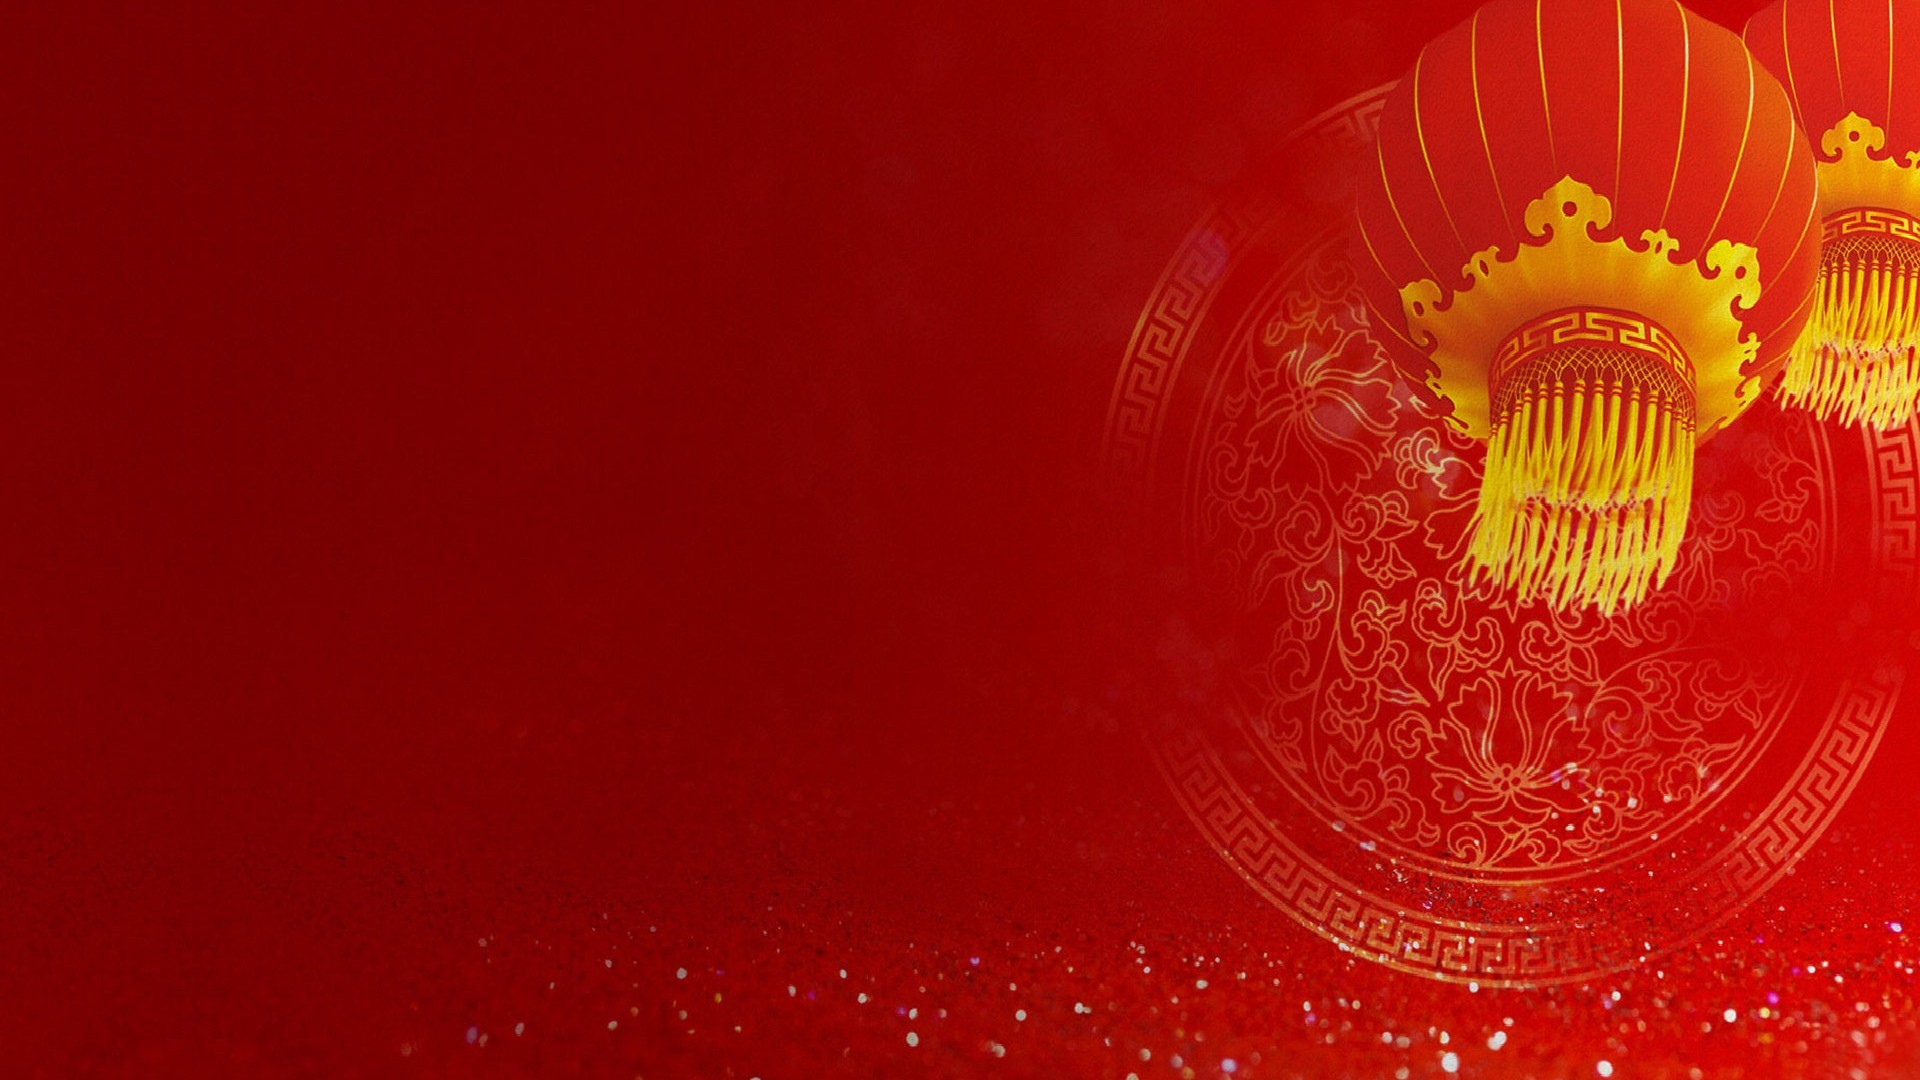 25 Happy Chinese New Year Traditions 2015 1920x1080